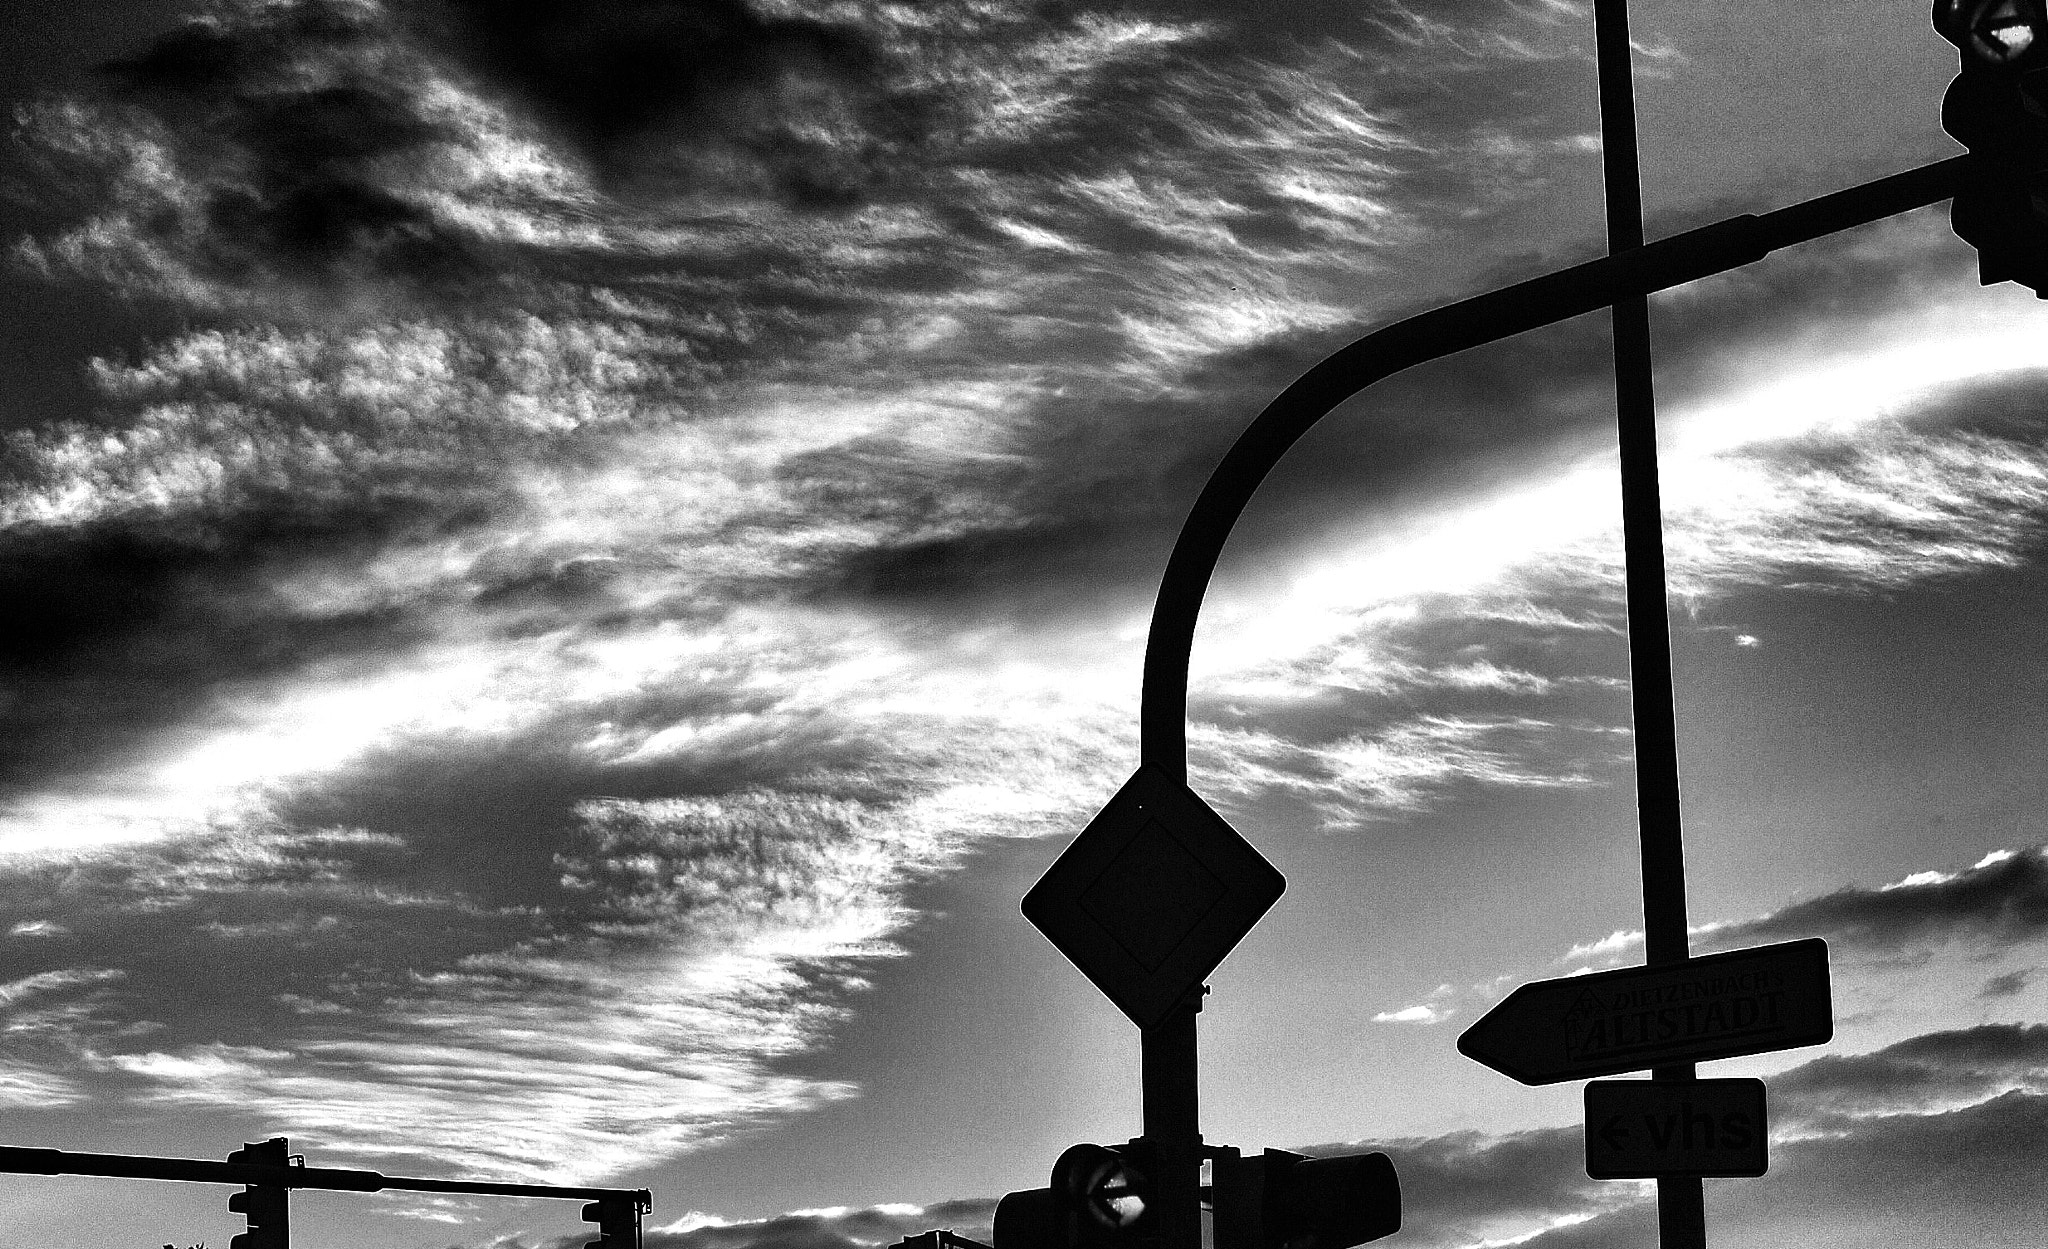 Photograph Ampel by Eikaetschja  on 500px